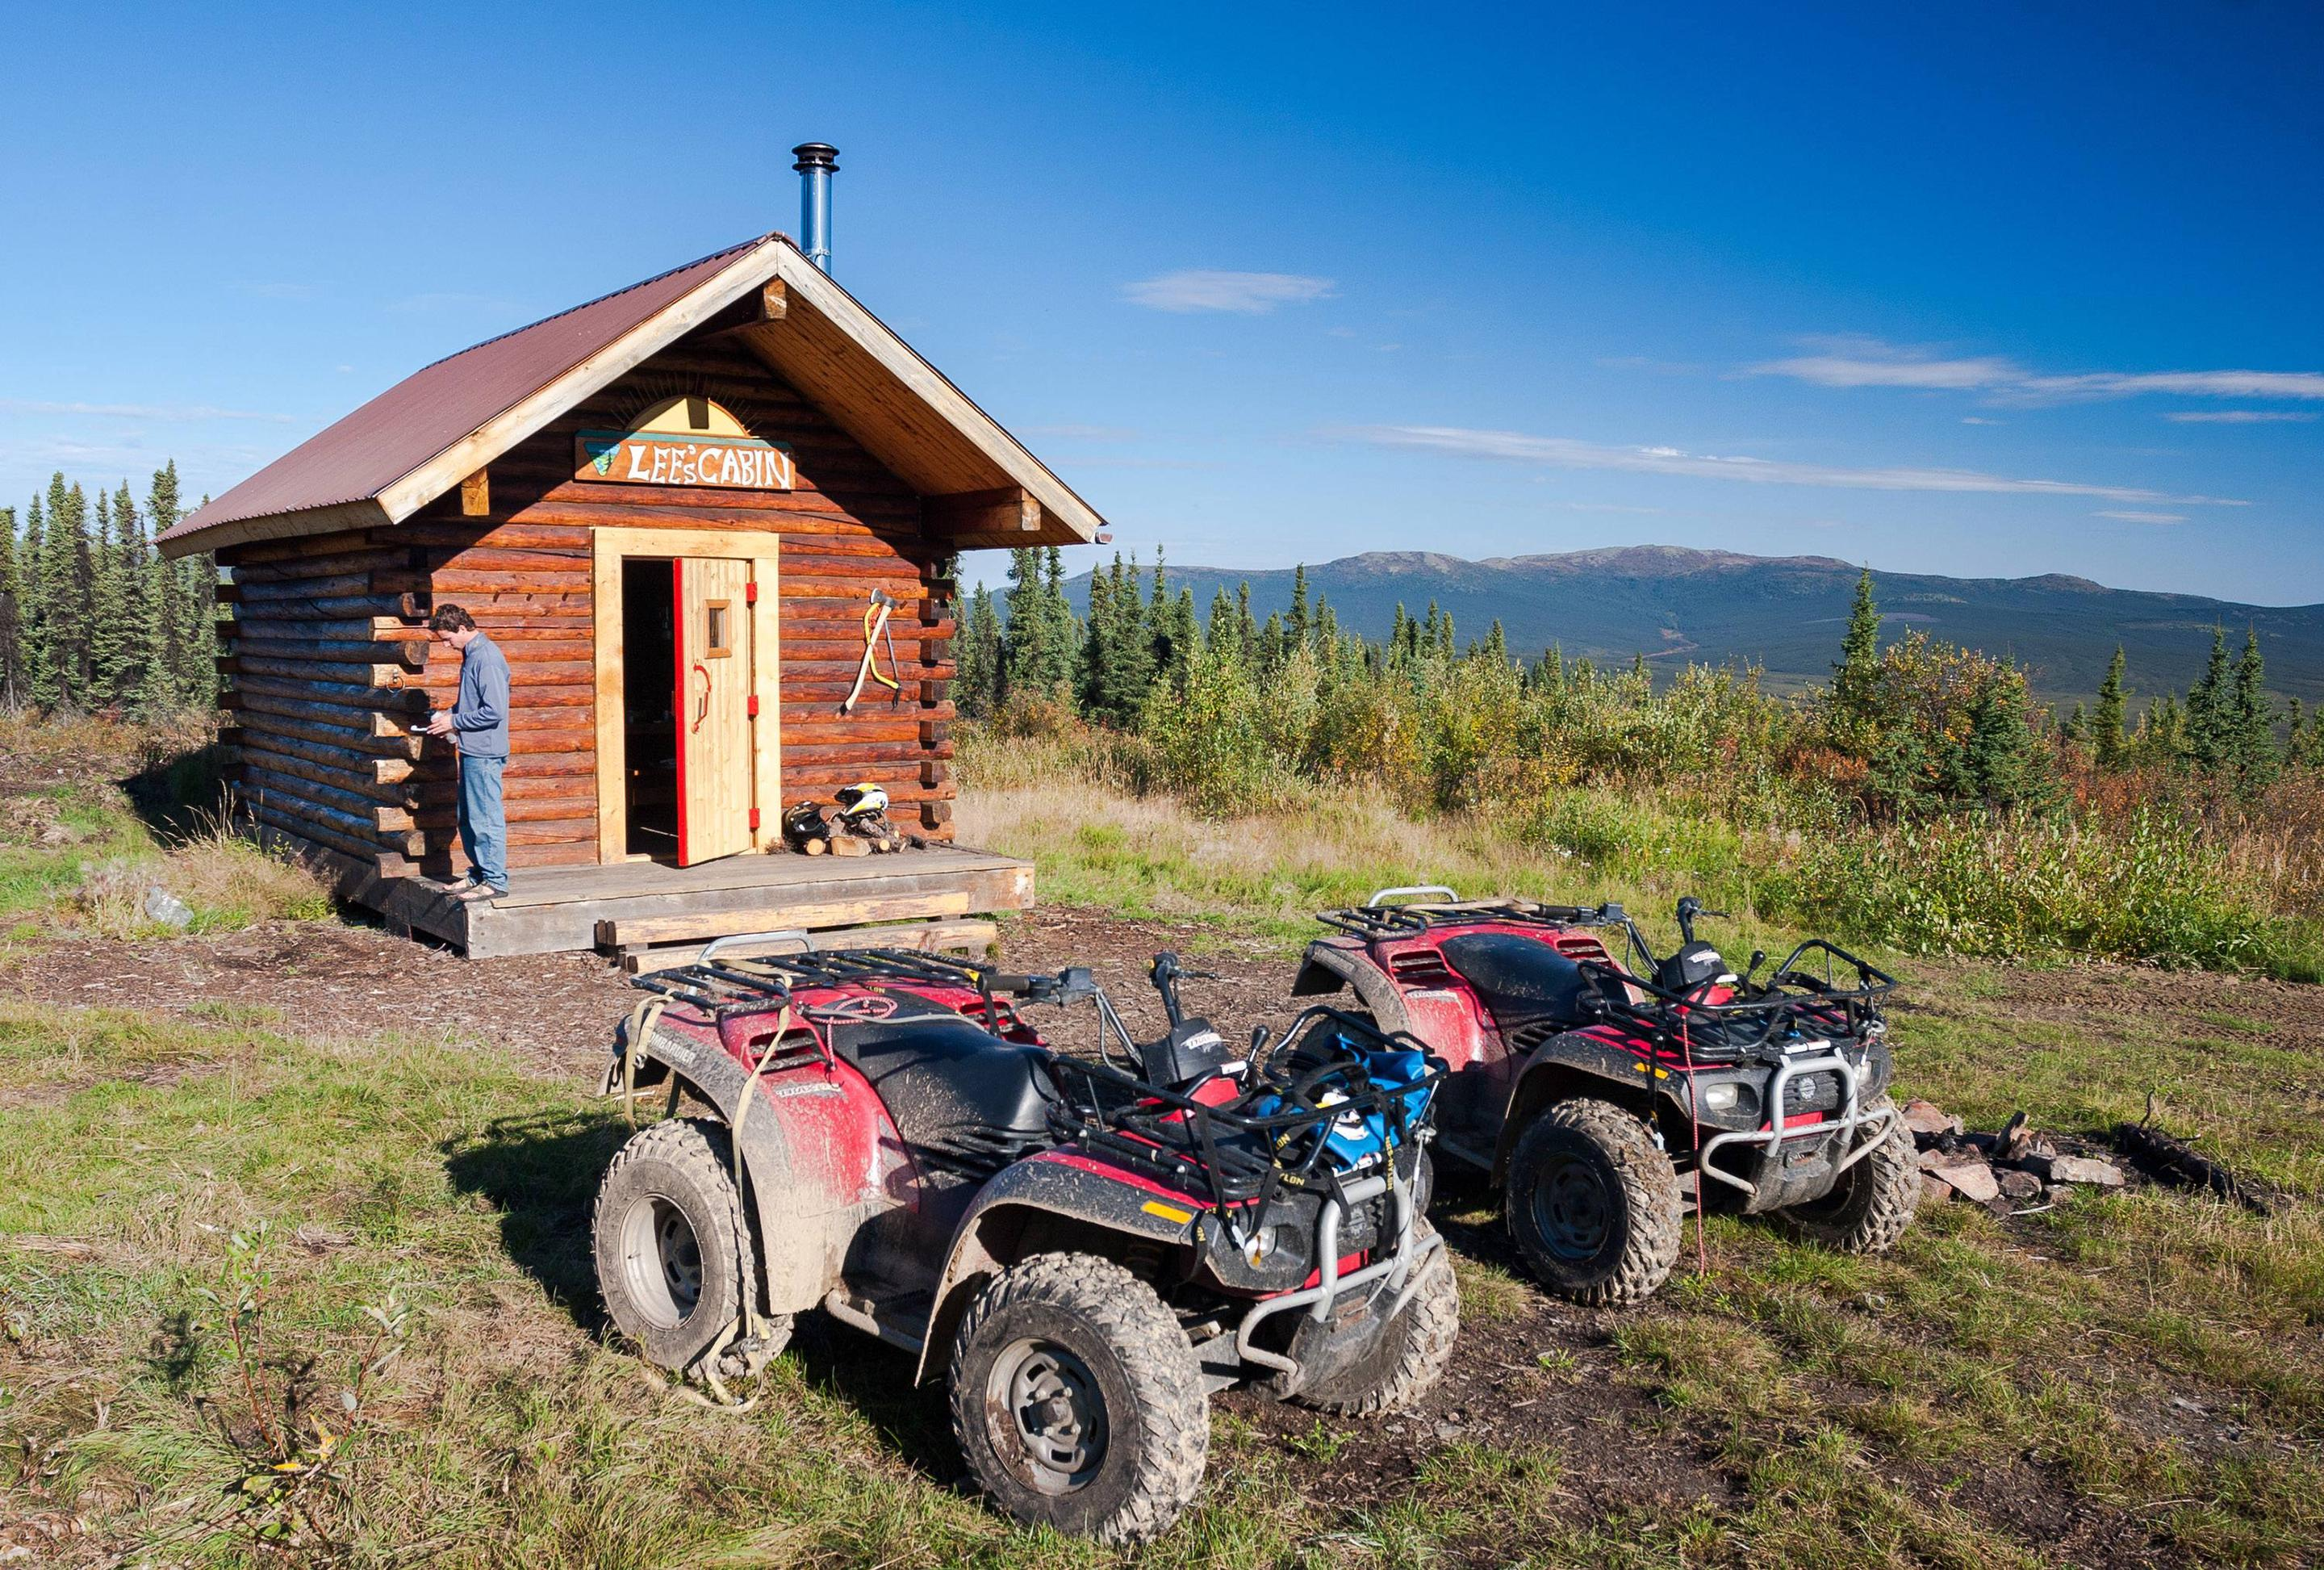 Two all-terrain vehicles parked in front of a log cabinLee's Cabin, unlike many of the White Mountains cabins, is readily accessible in summer.